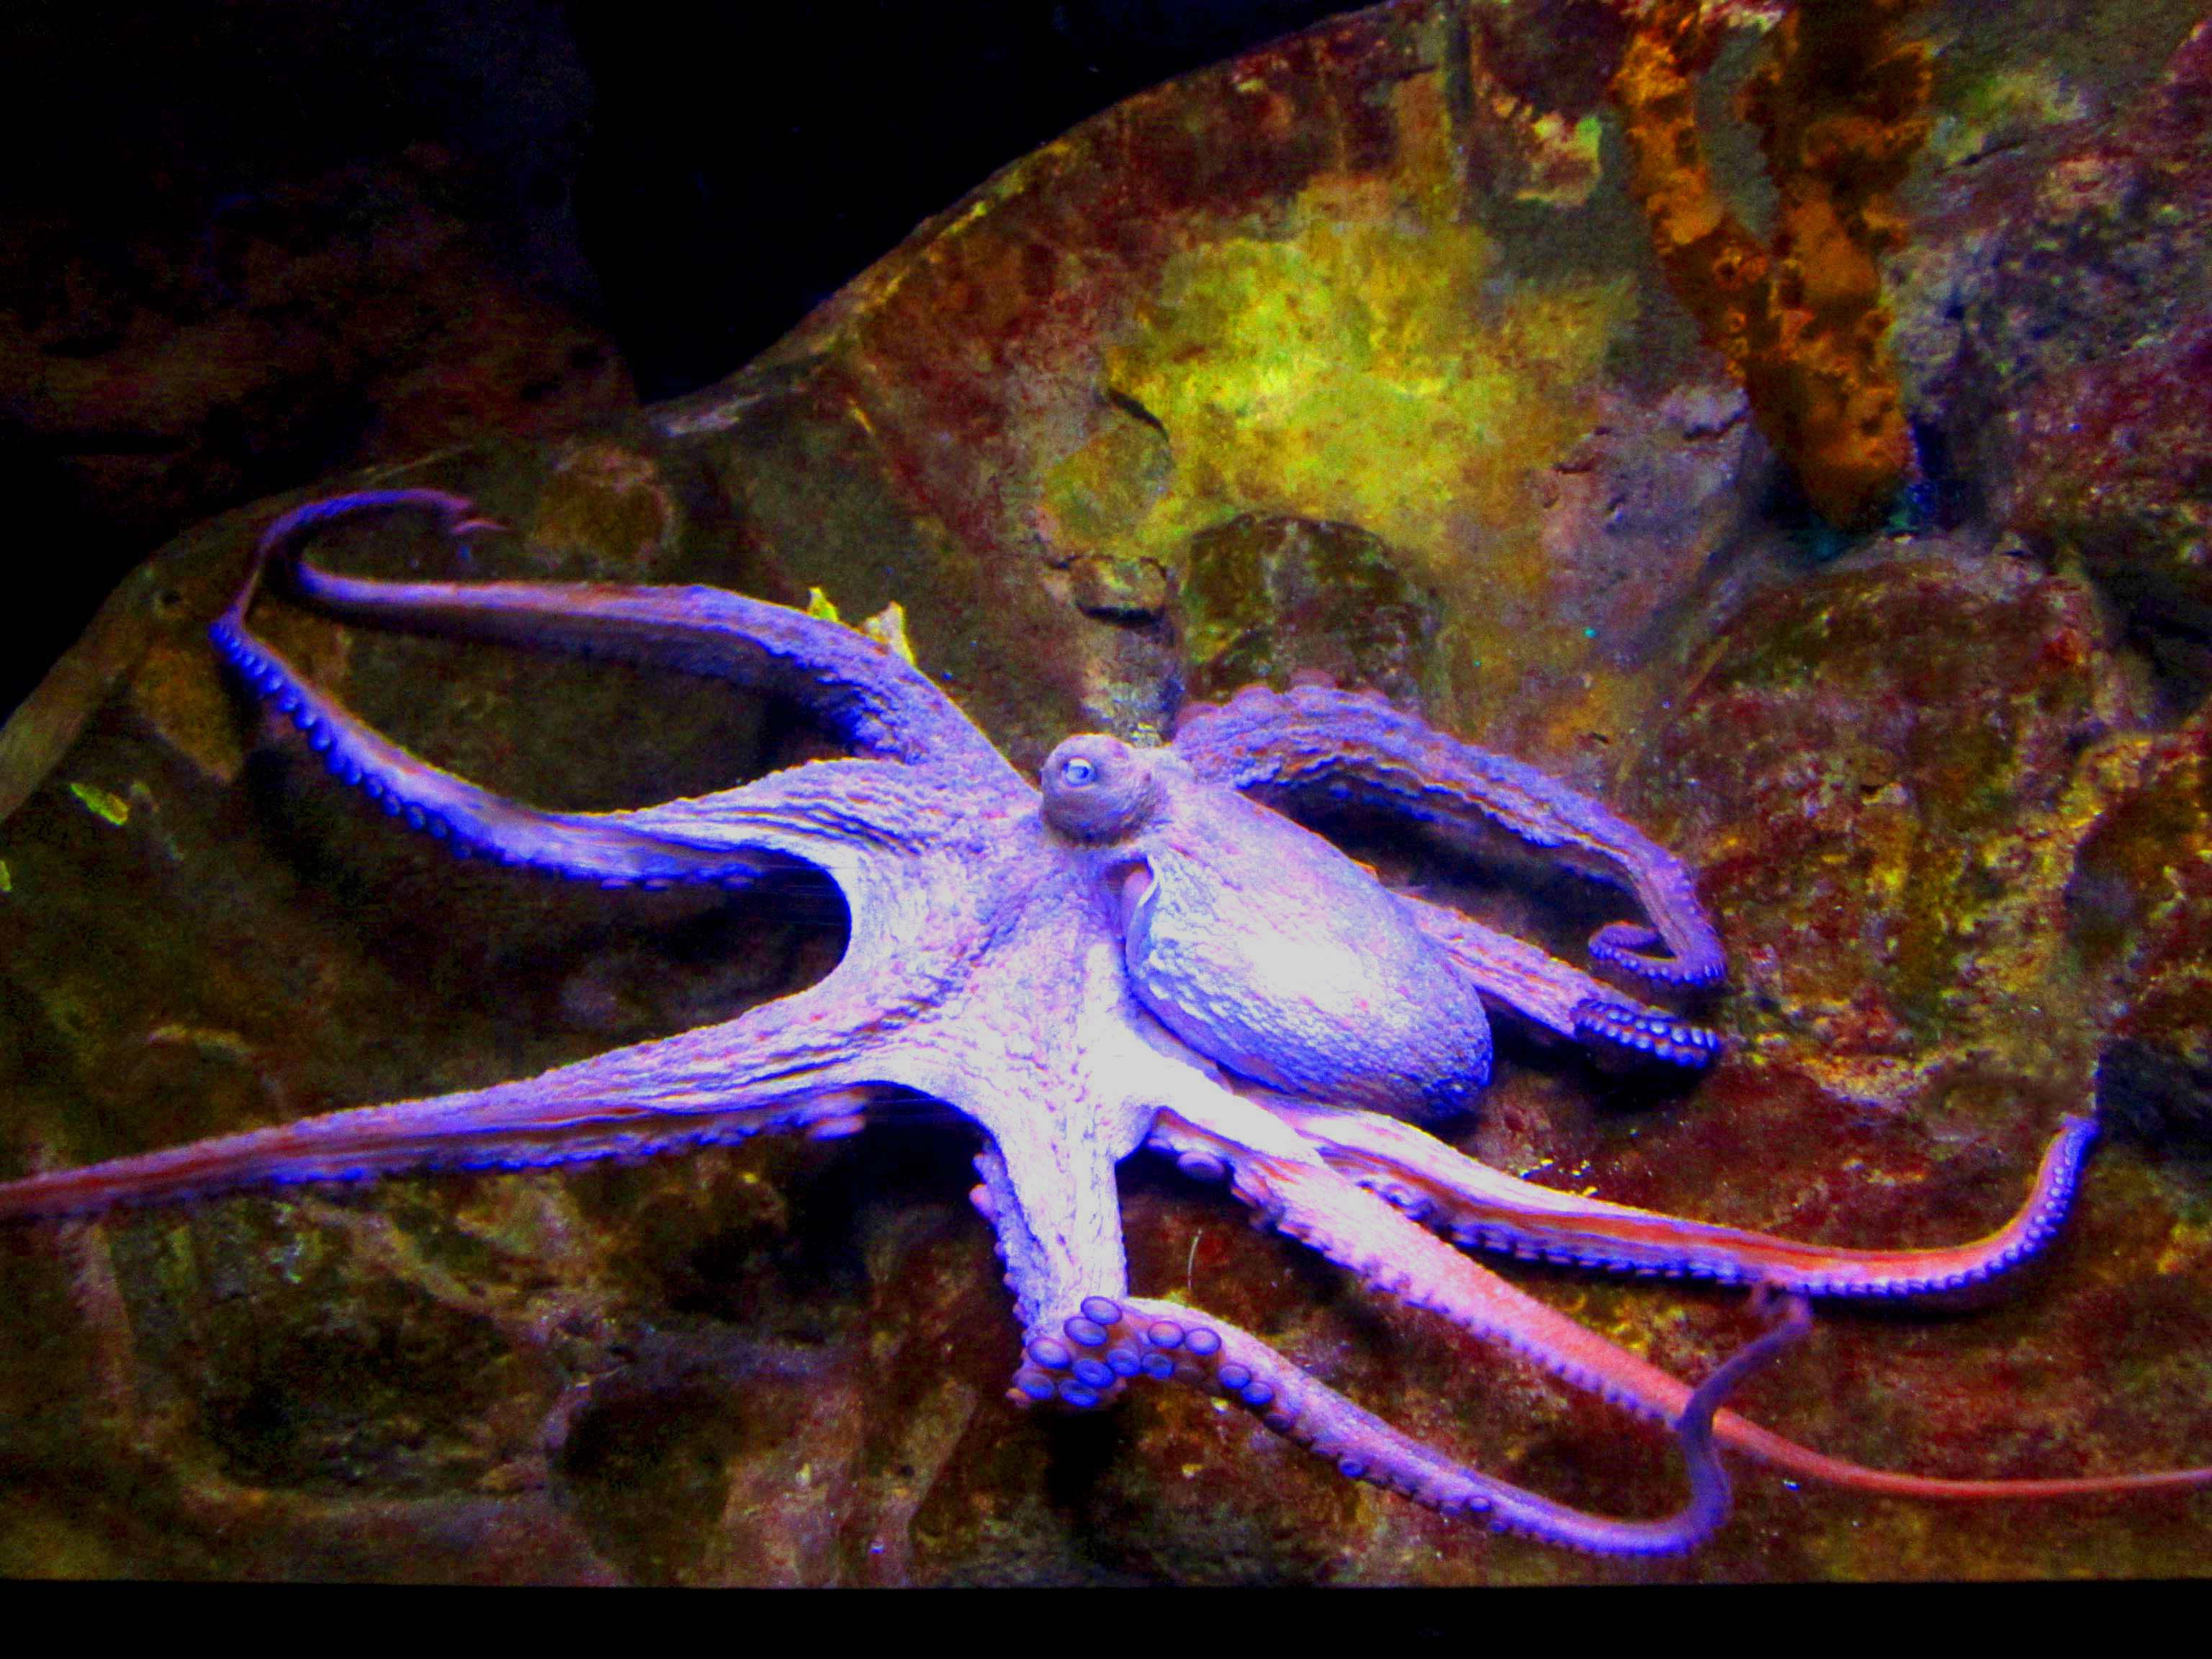 10 fascinating octopus facts